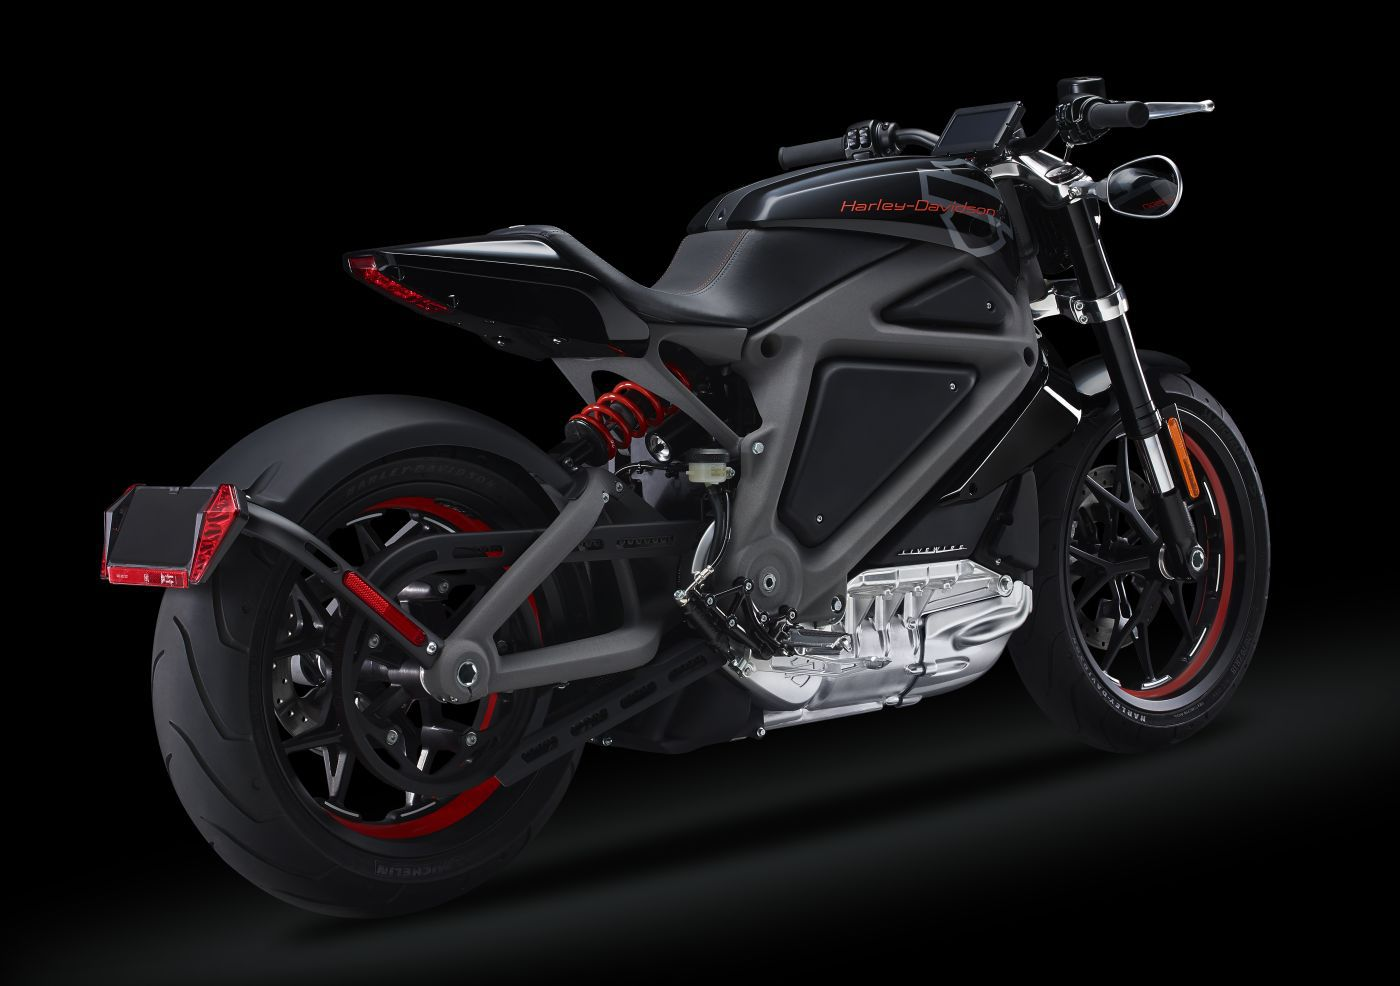 Project LiveWire - The First Harley-Davidson Electric Motorcycle